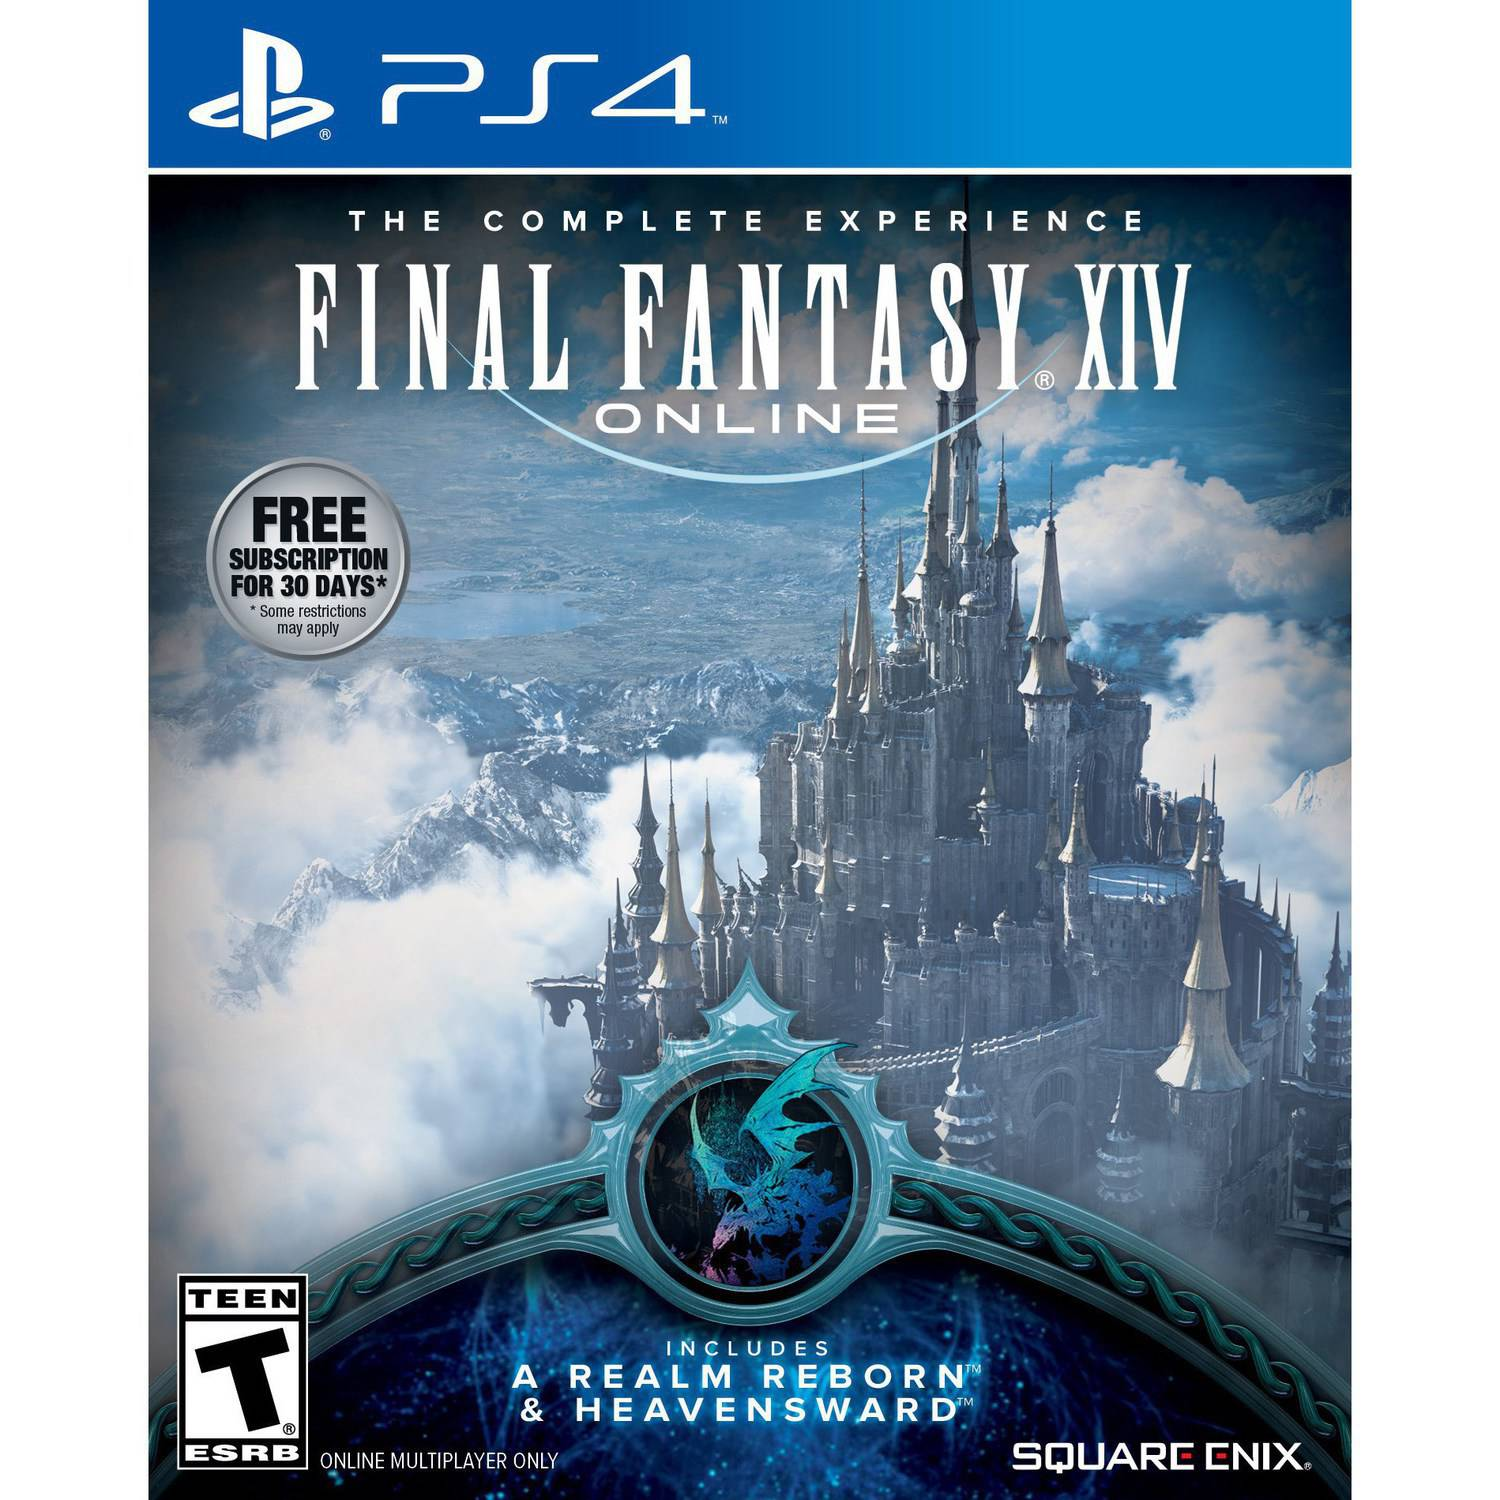 Final Fantasy XIV: A Realm Reborn (PS4) - Pre-Owned